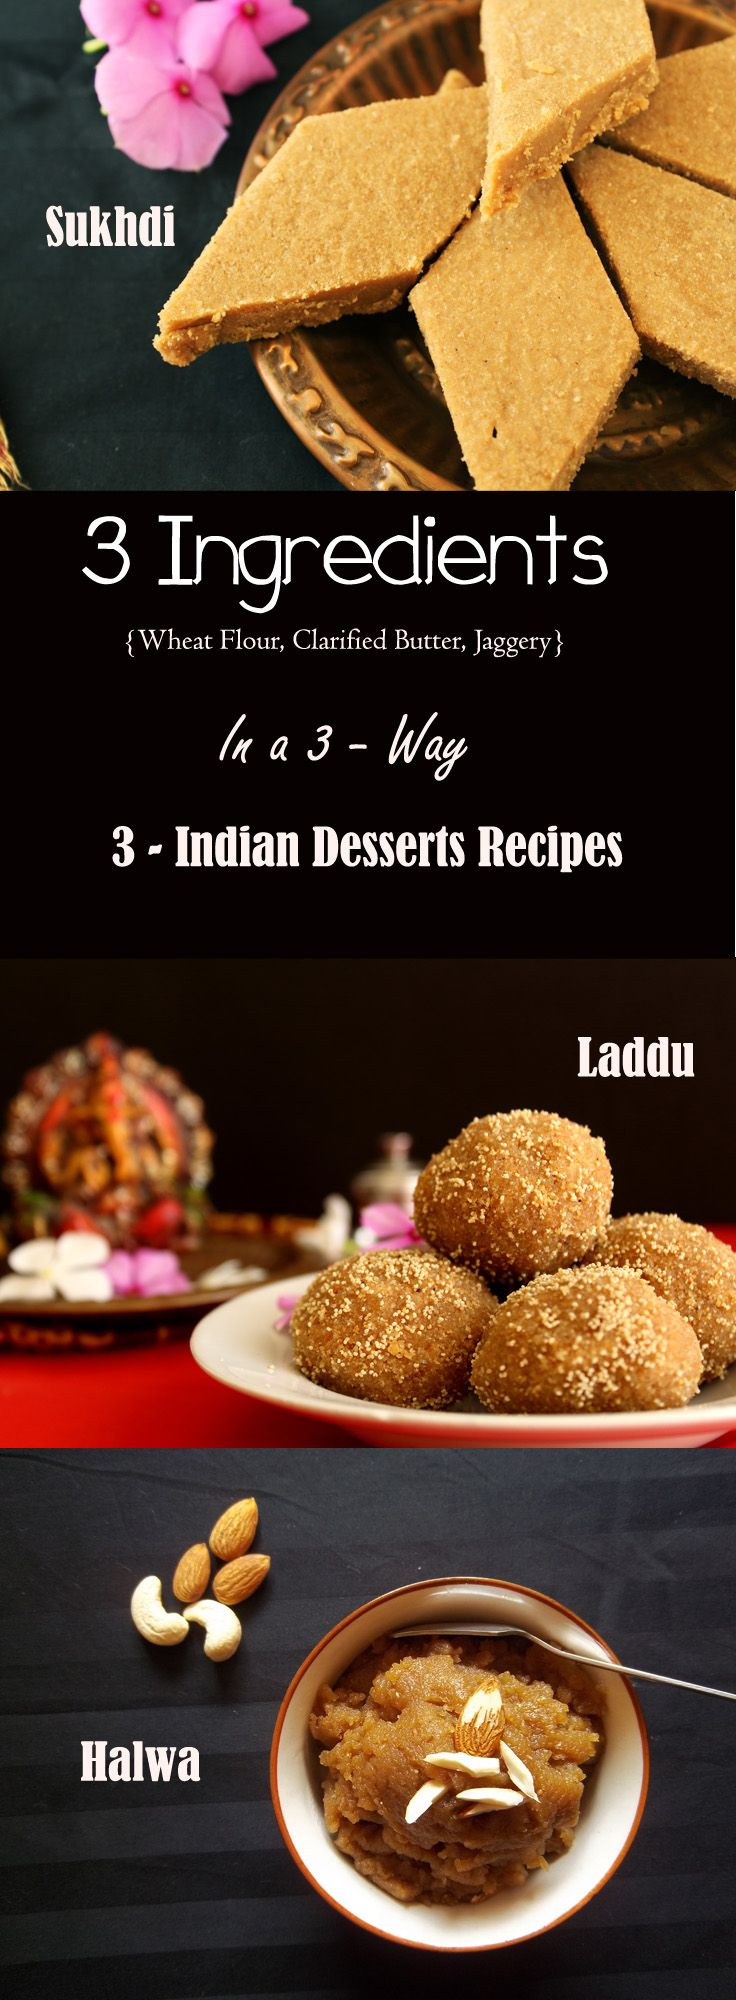 3 ingredients Recipes. Wheat flour, Clarified butter (Ghee), Jaggery. 3 Indian Dessert Recipes with same ingredients..